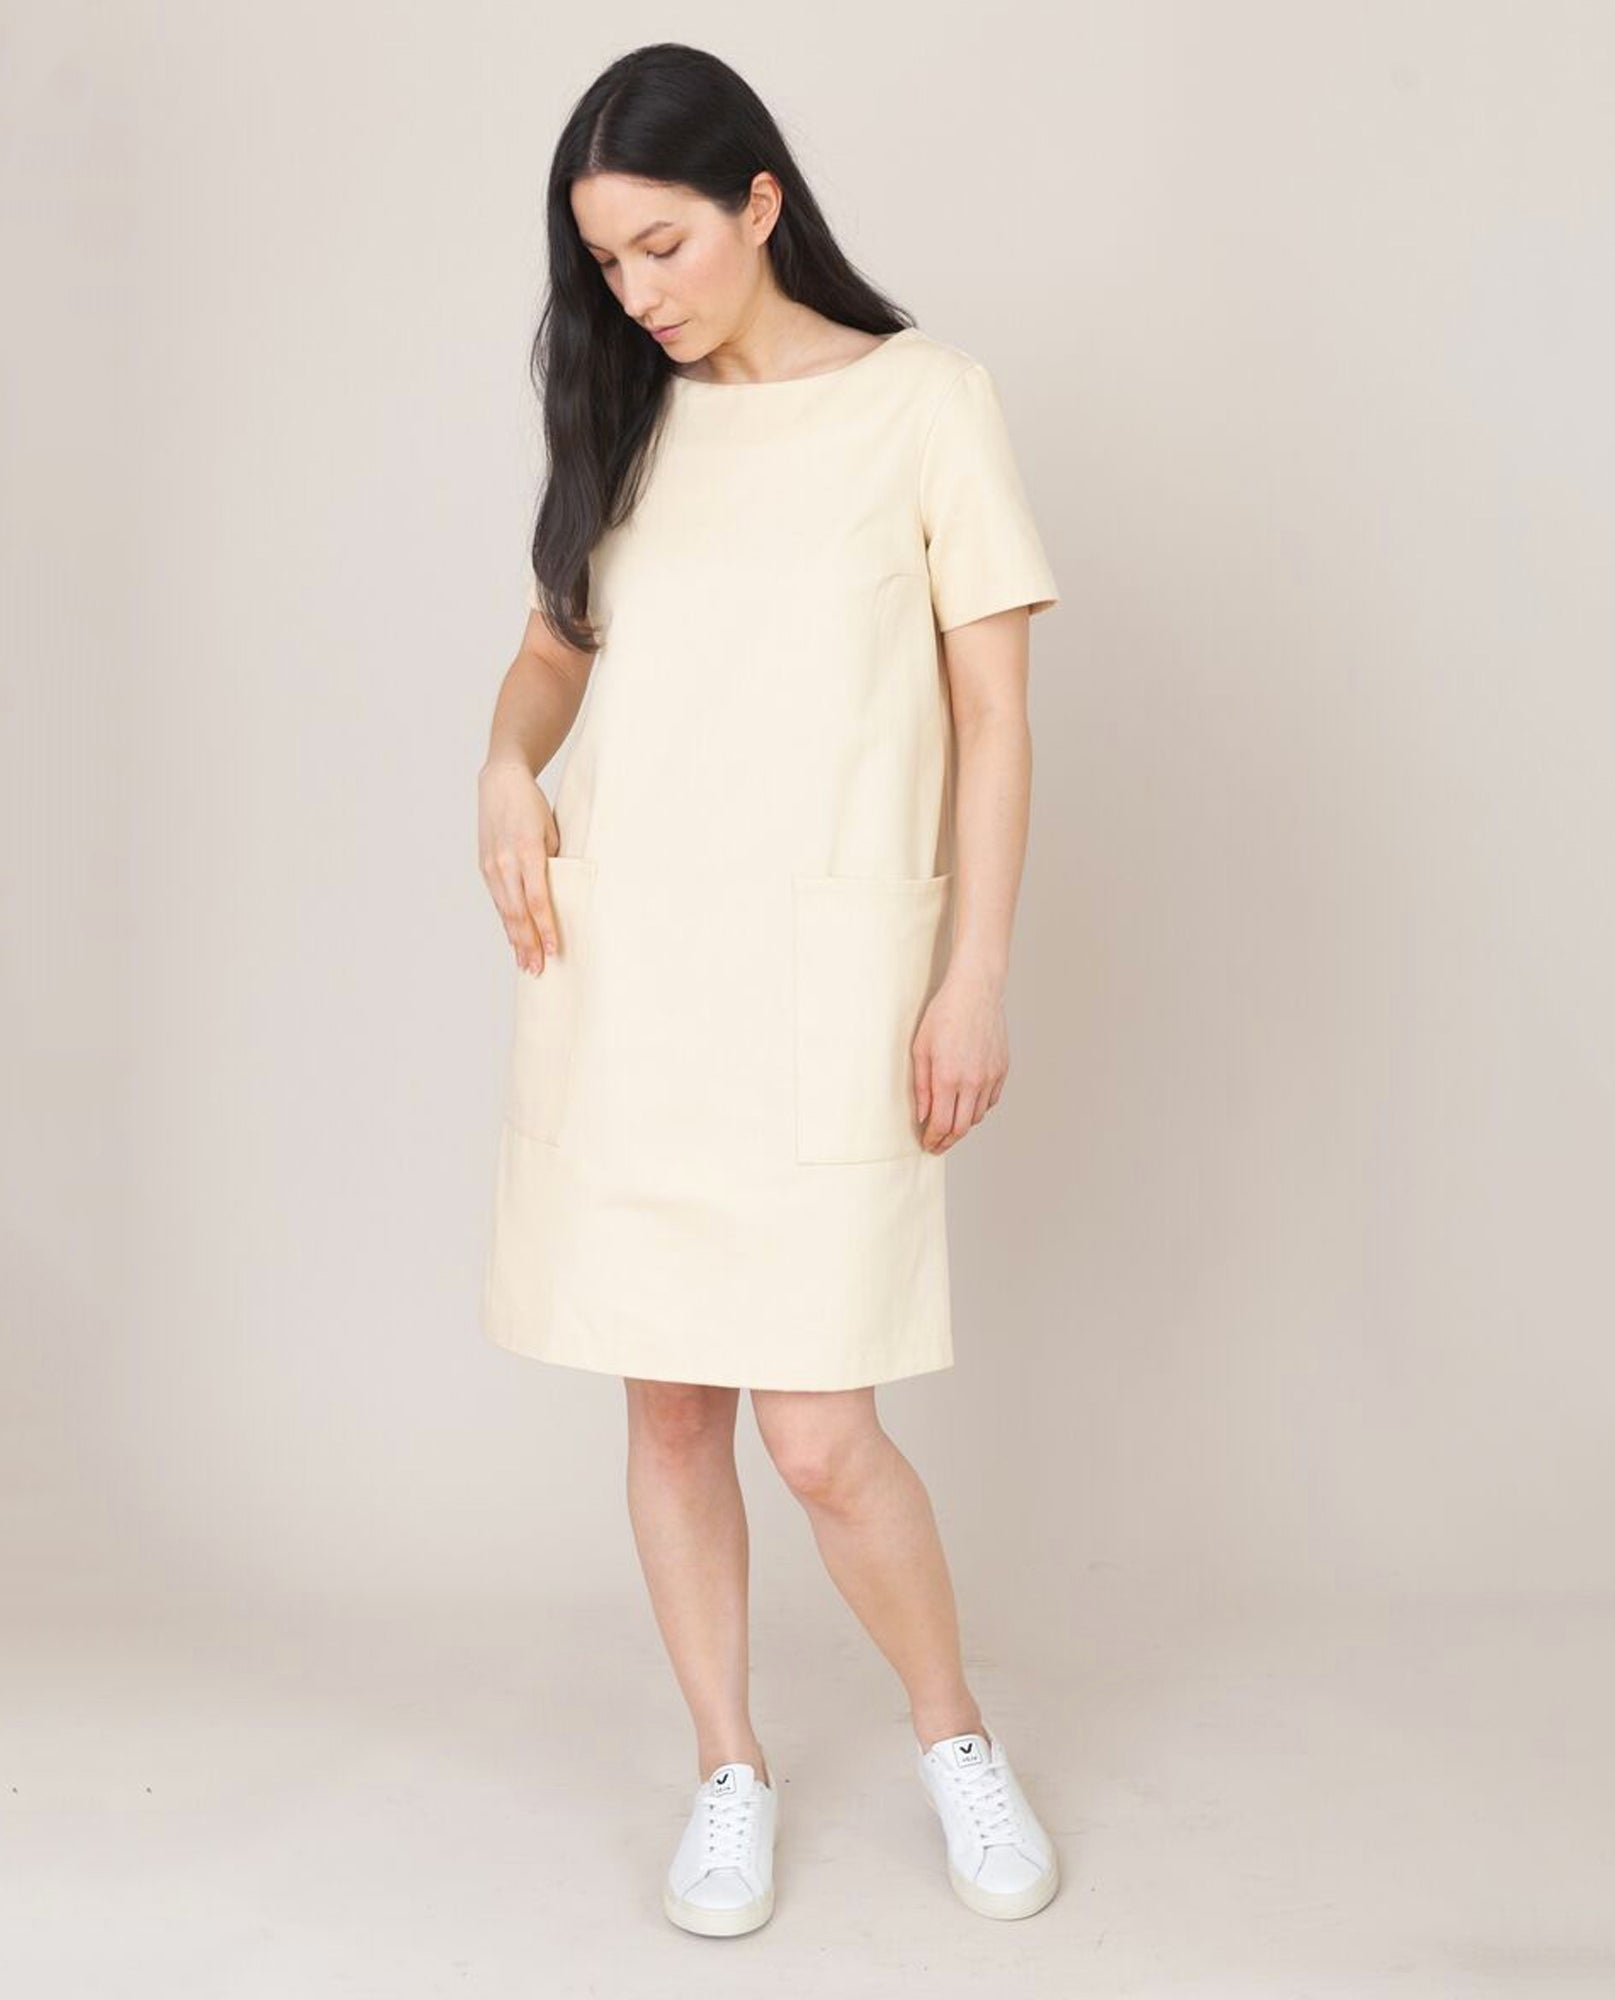 LOLA-DEE Cotton Denim Dress In Ivory